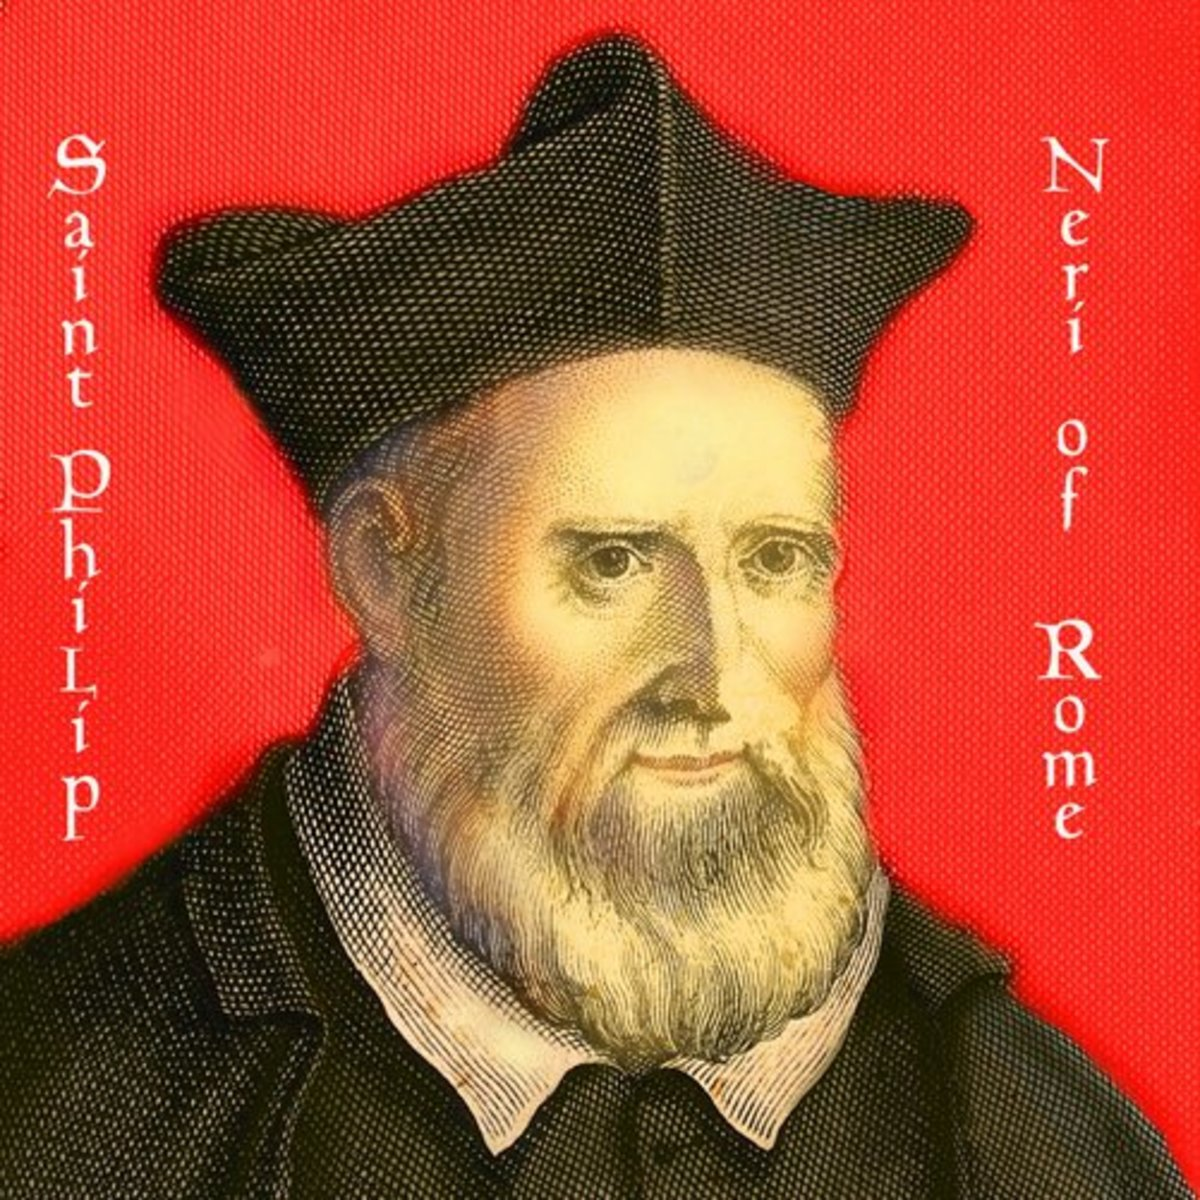 The Apostle of Rome, St. Philip Neri